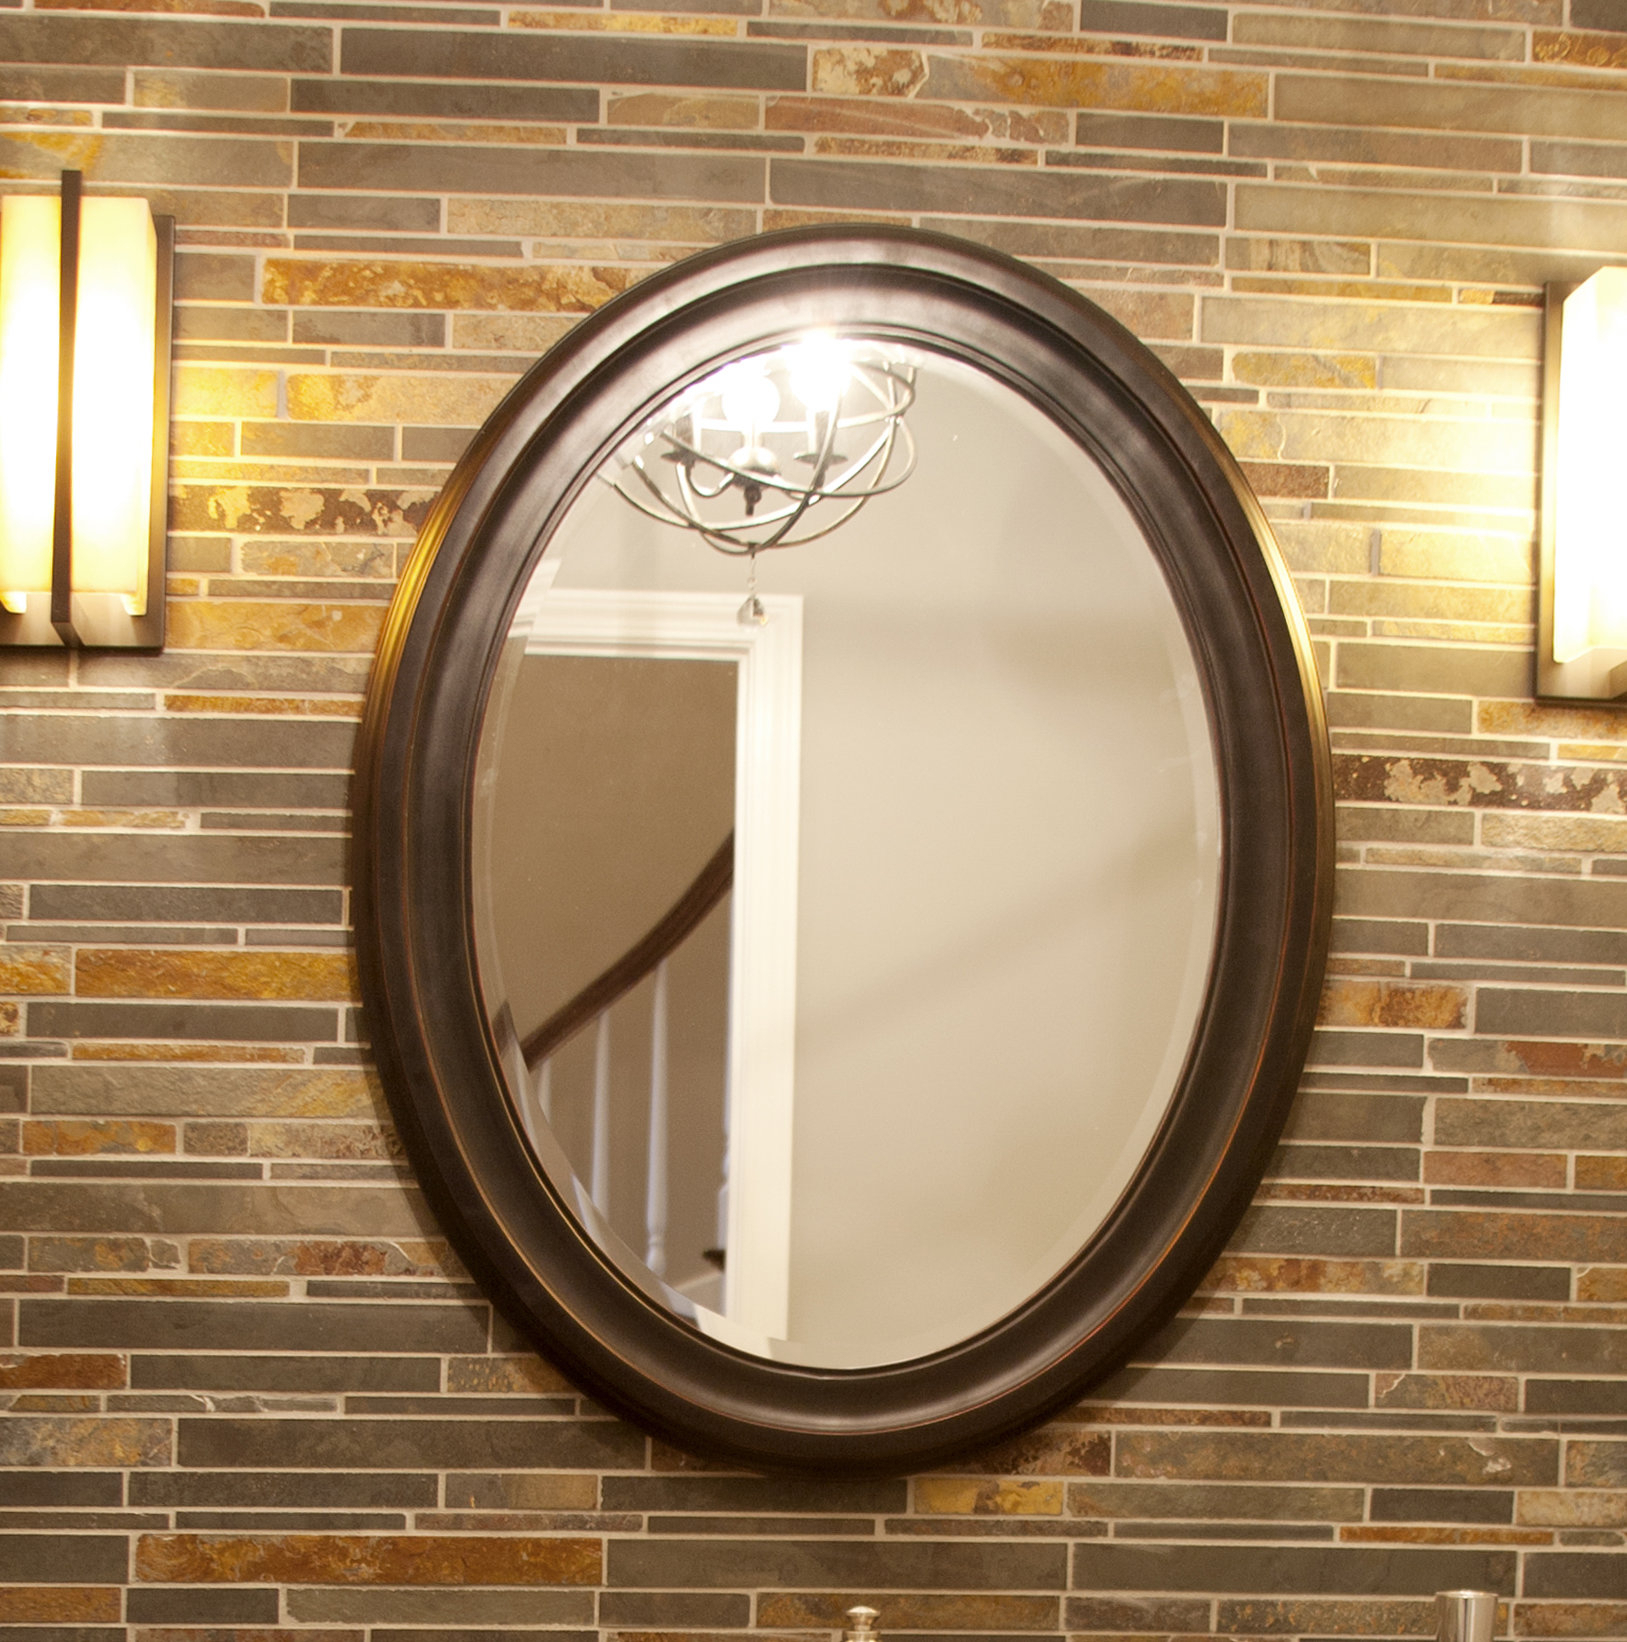 Pfister Oval Wood Wall Mirror With Regard To Oval Wood Wall Mirrors (View 23 of 30)